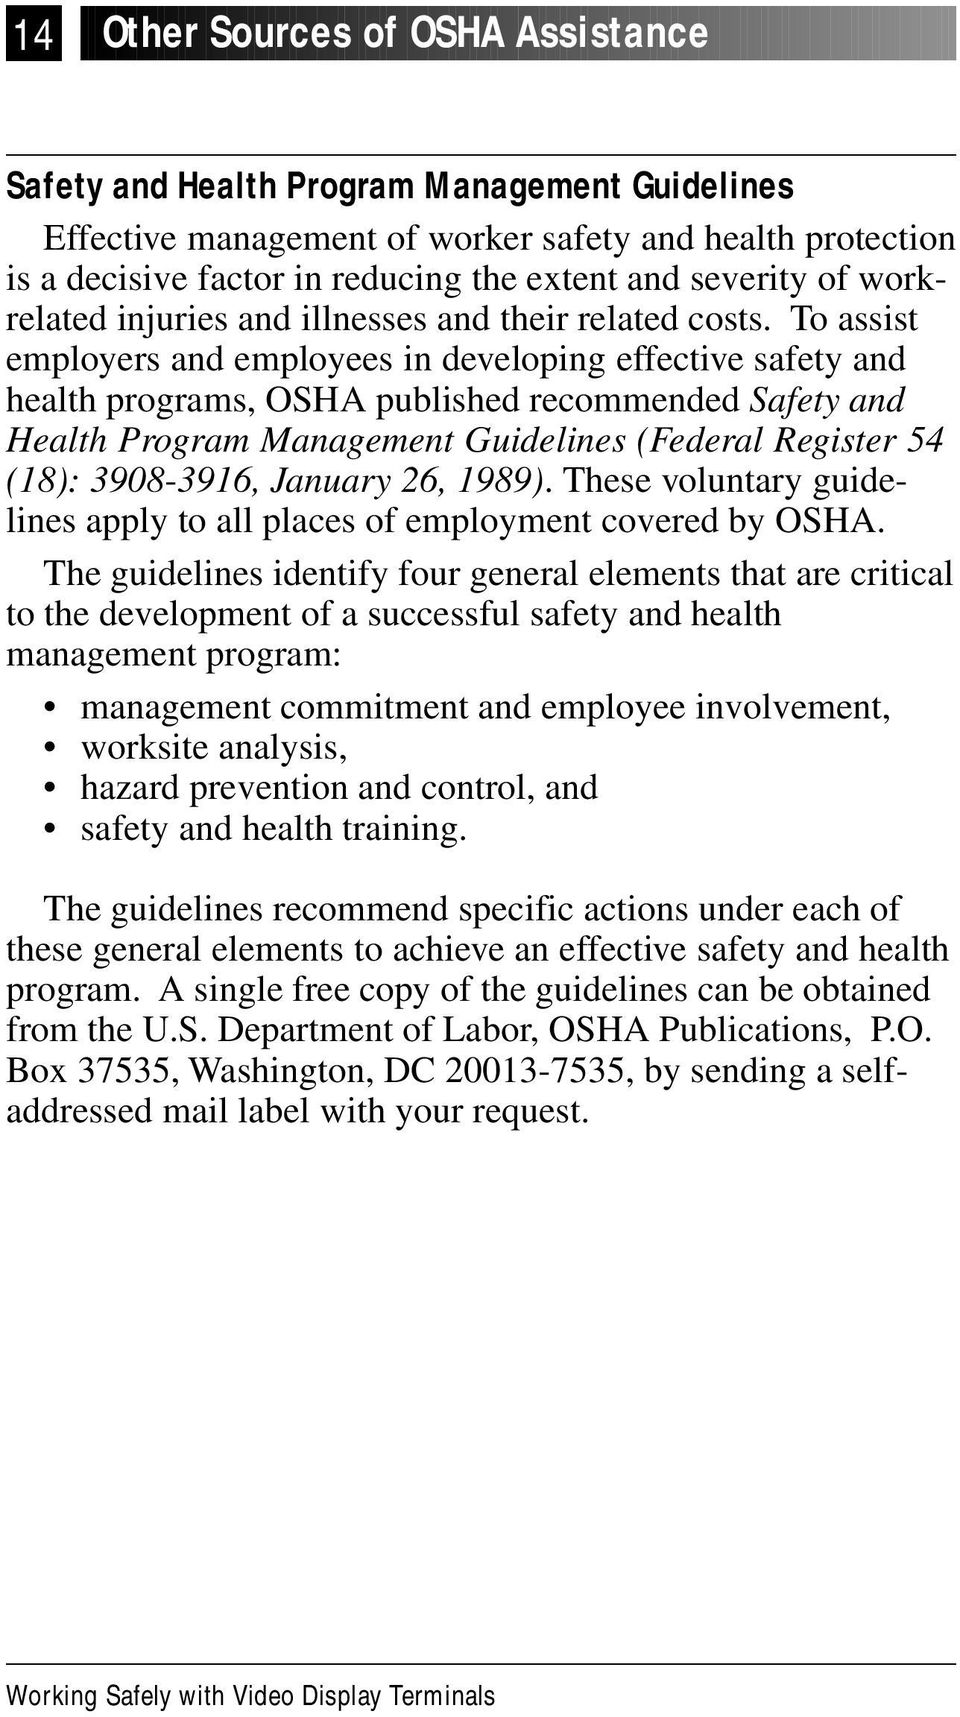 To assist employers and employees in developing effective safety and health programs, OSHA published recommended Safety and Health Program Management Guidelines (Federal Register 54 (18): 3908-3916,